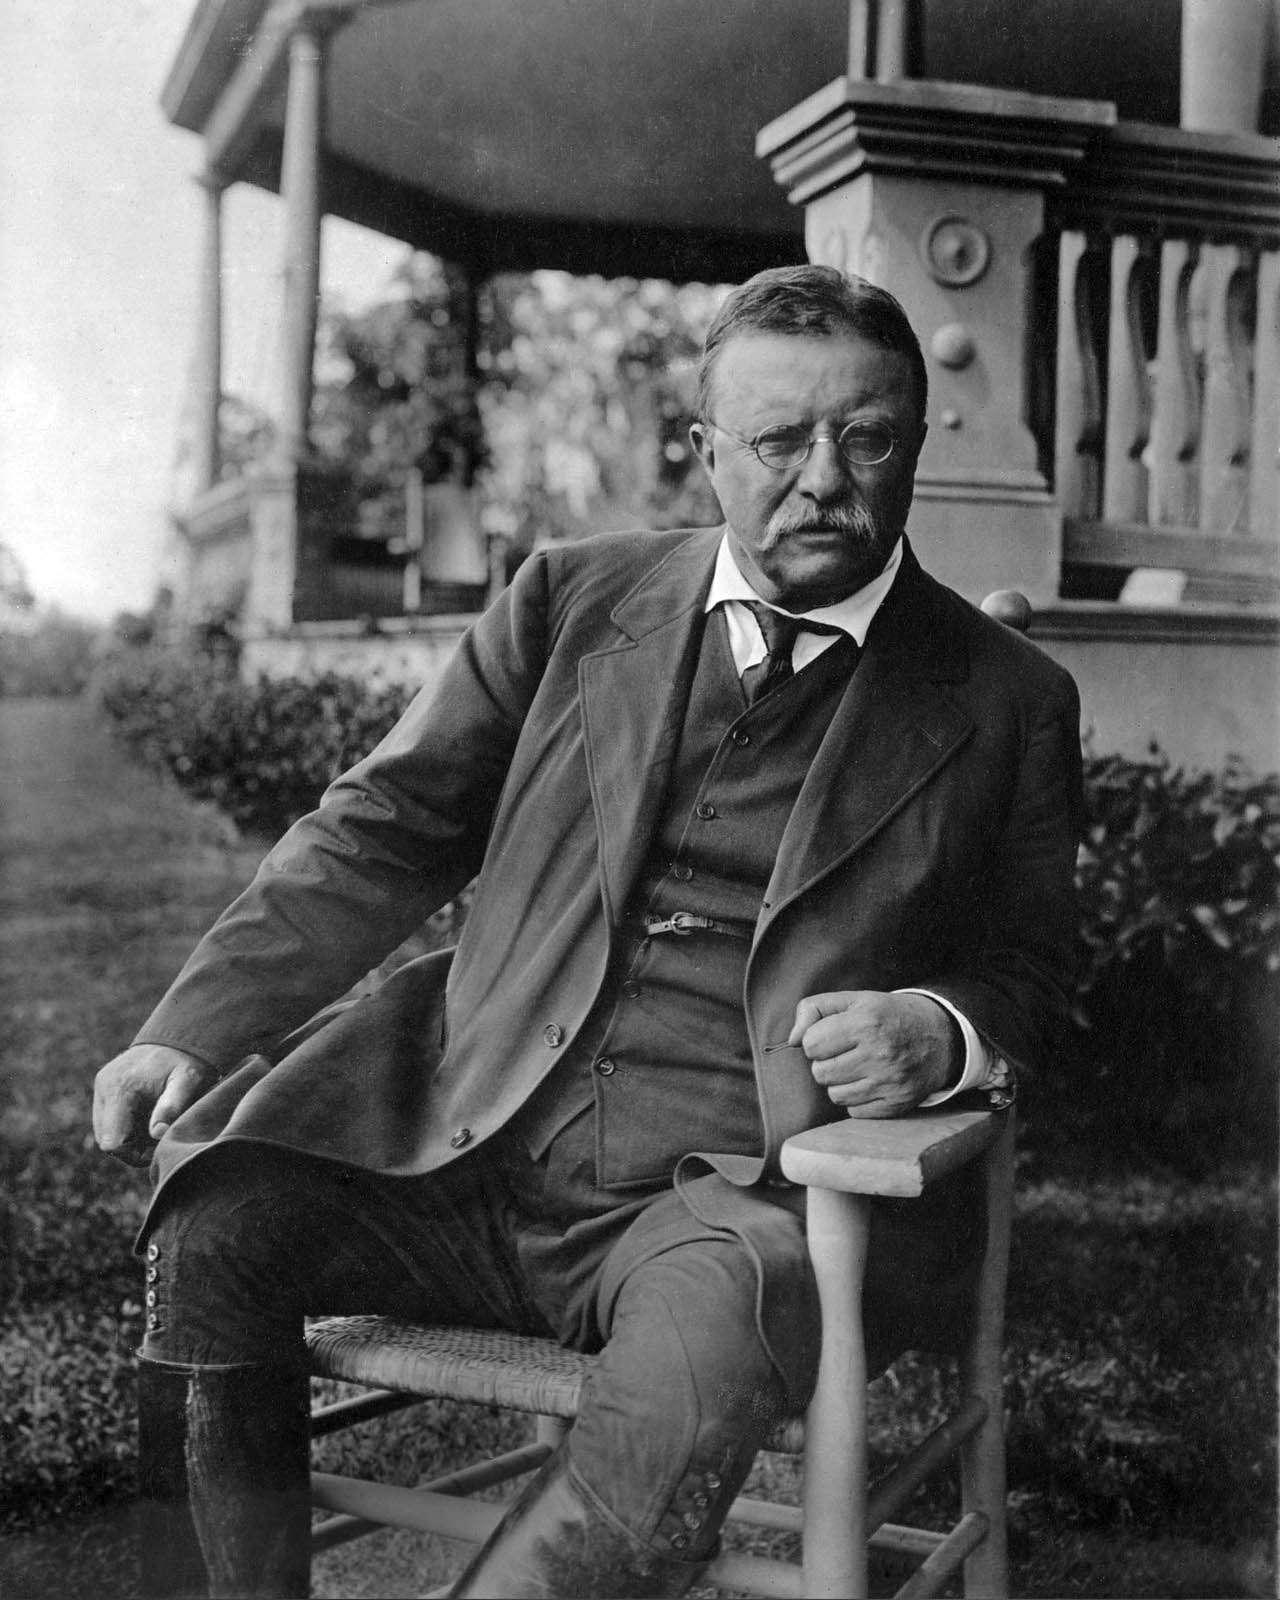 What did Theodore Roosevelt do?